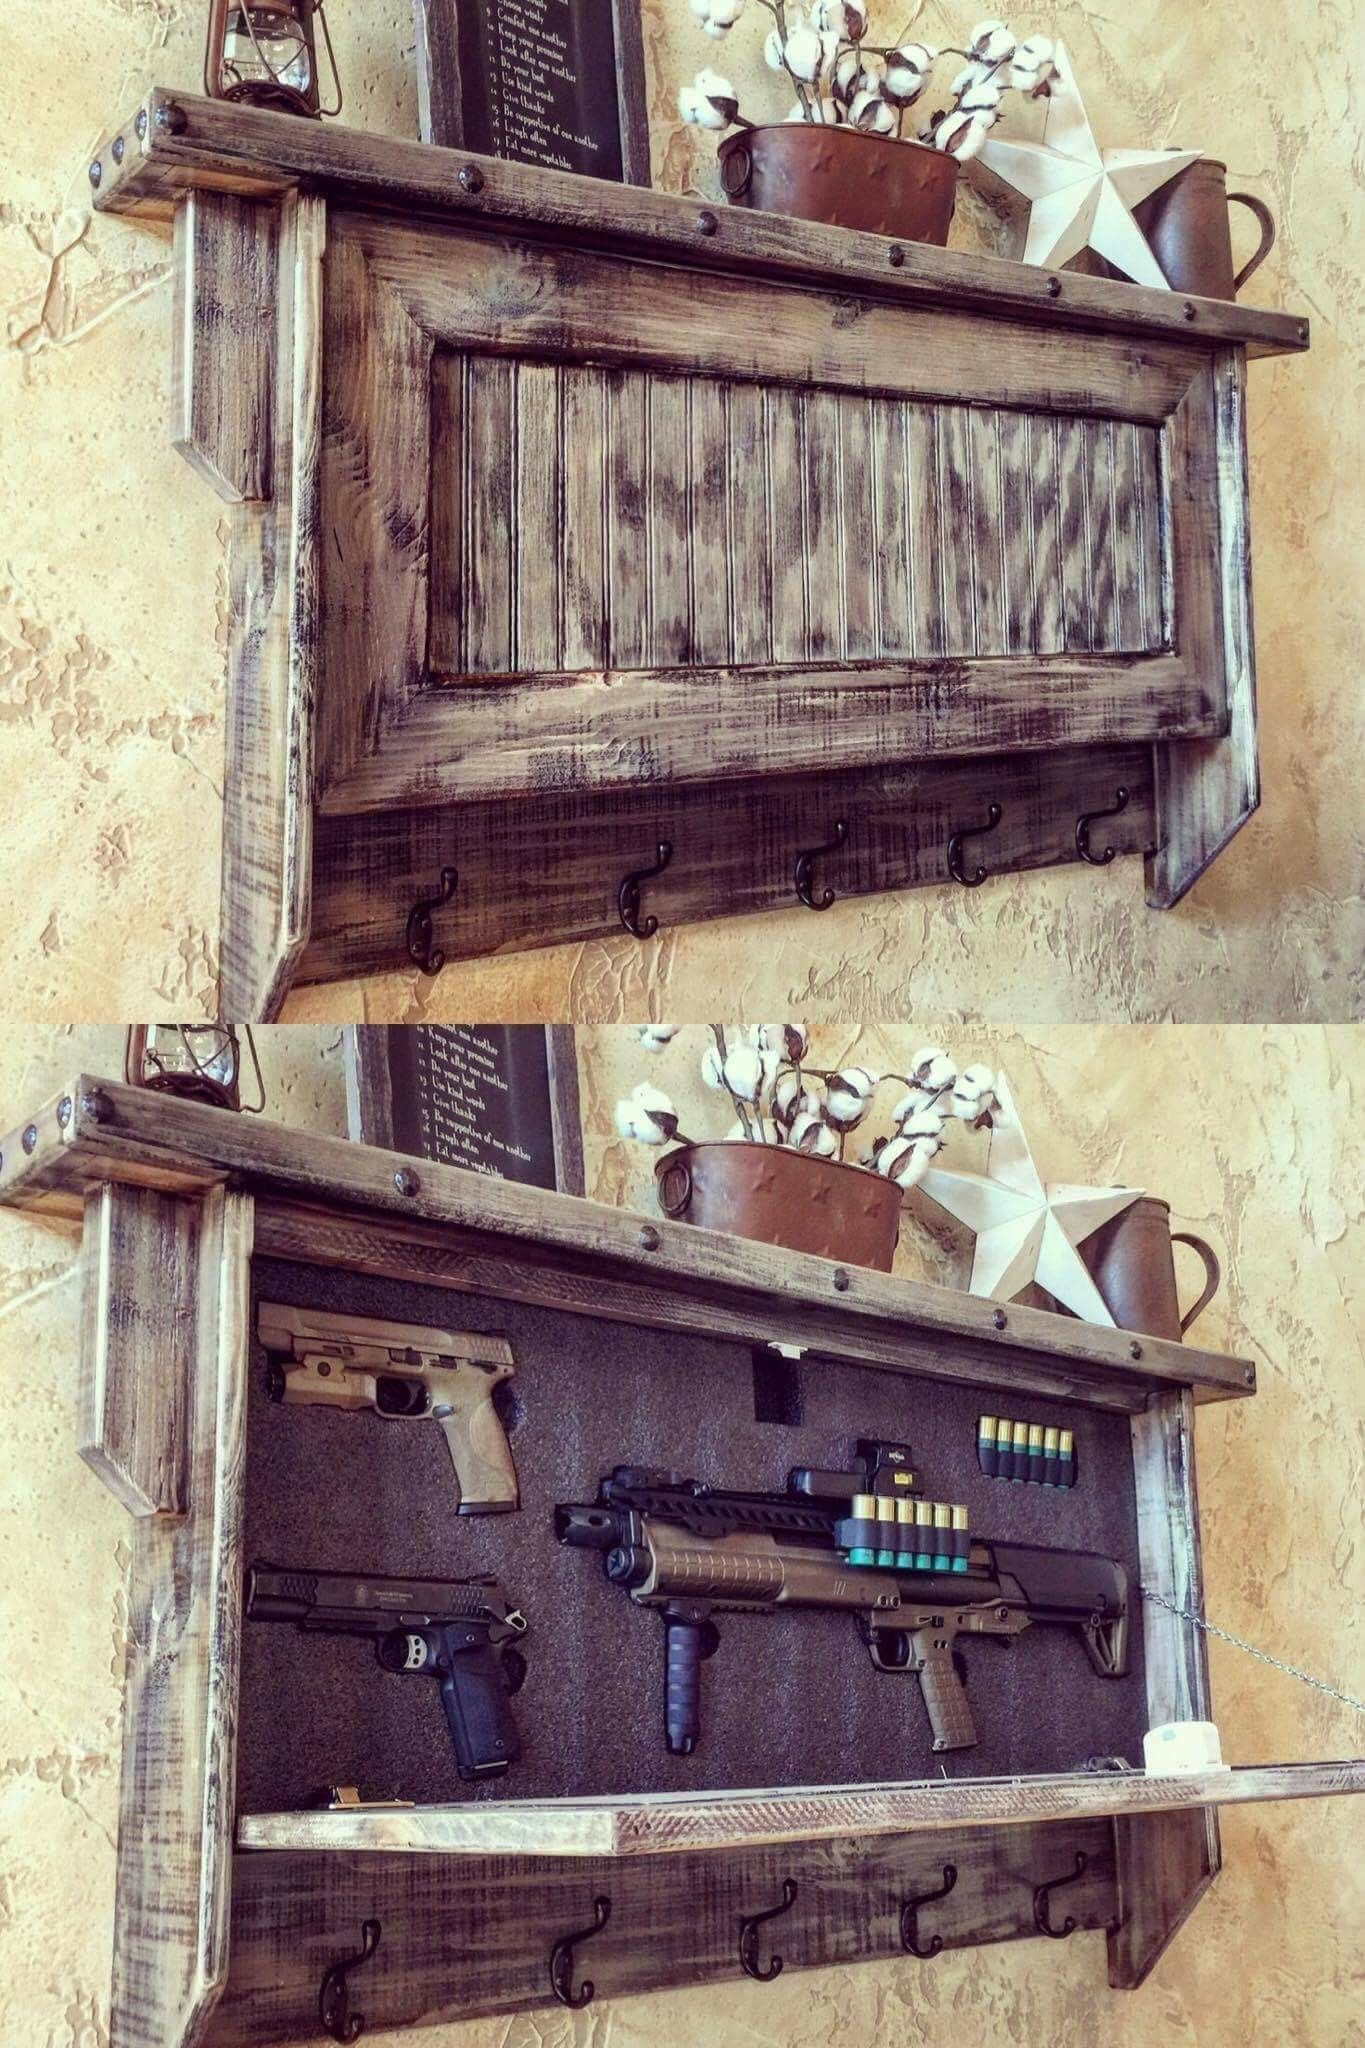 Pin On Concealment Furniture Ideas